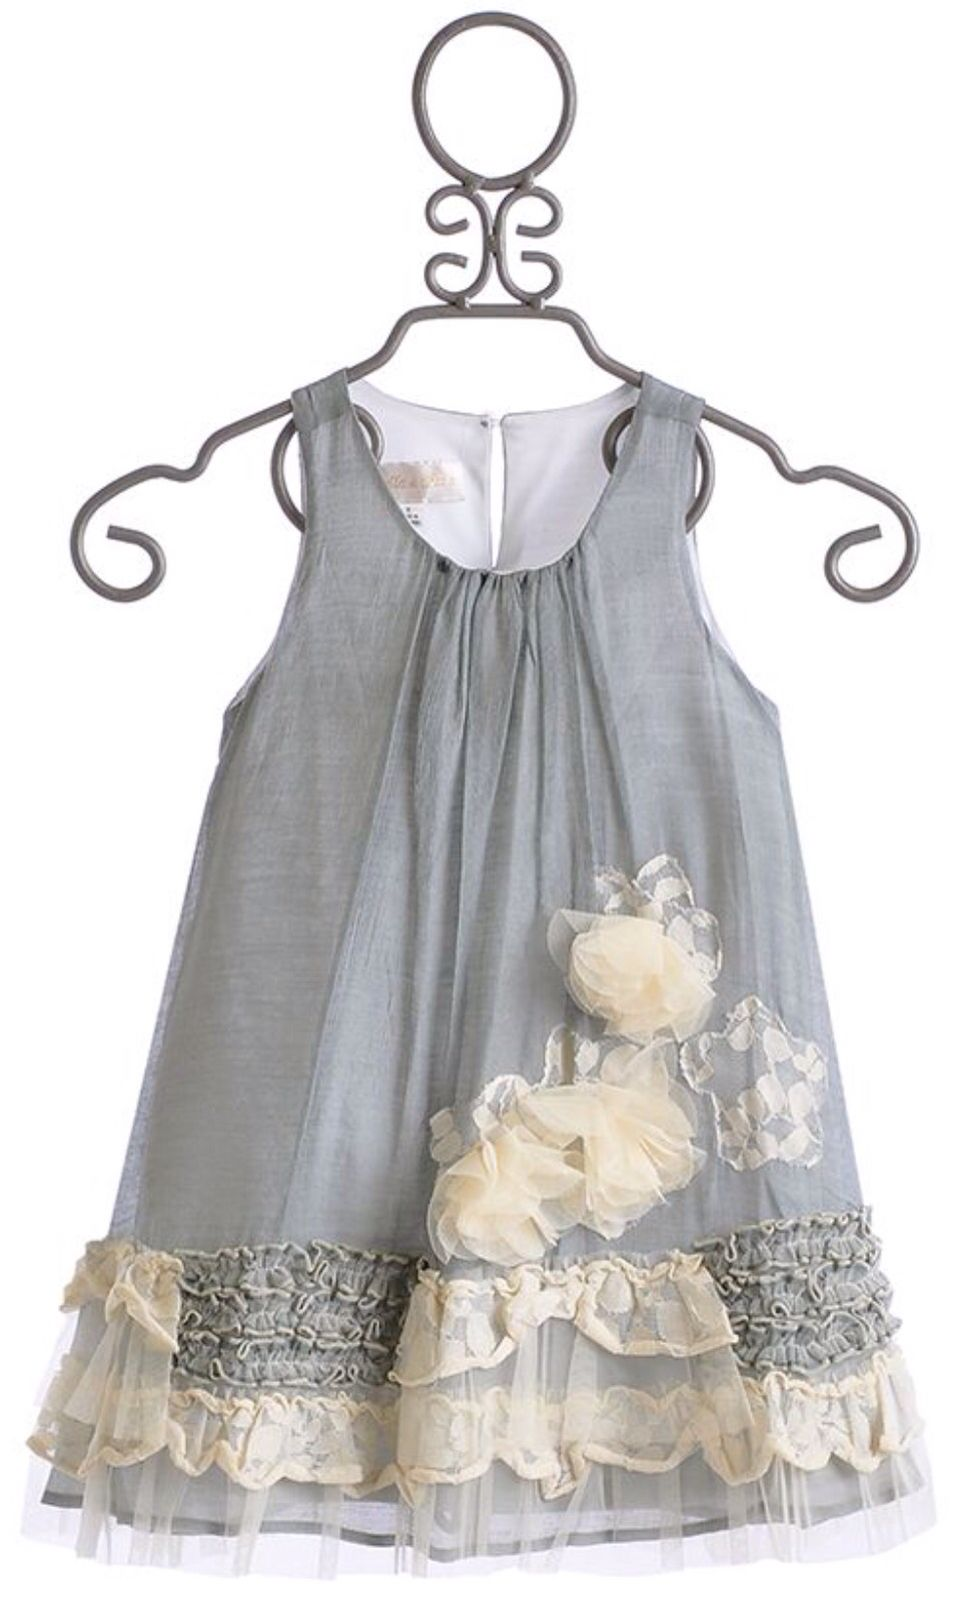 Pin by barb fries on kids clothes pinterest girls girls dresses